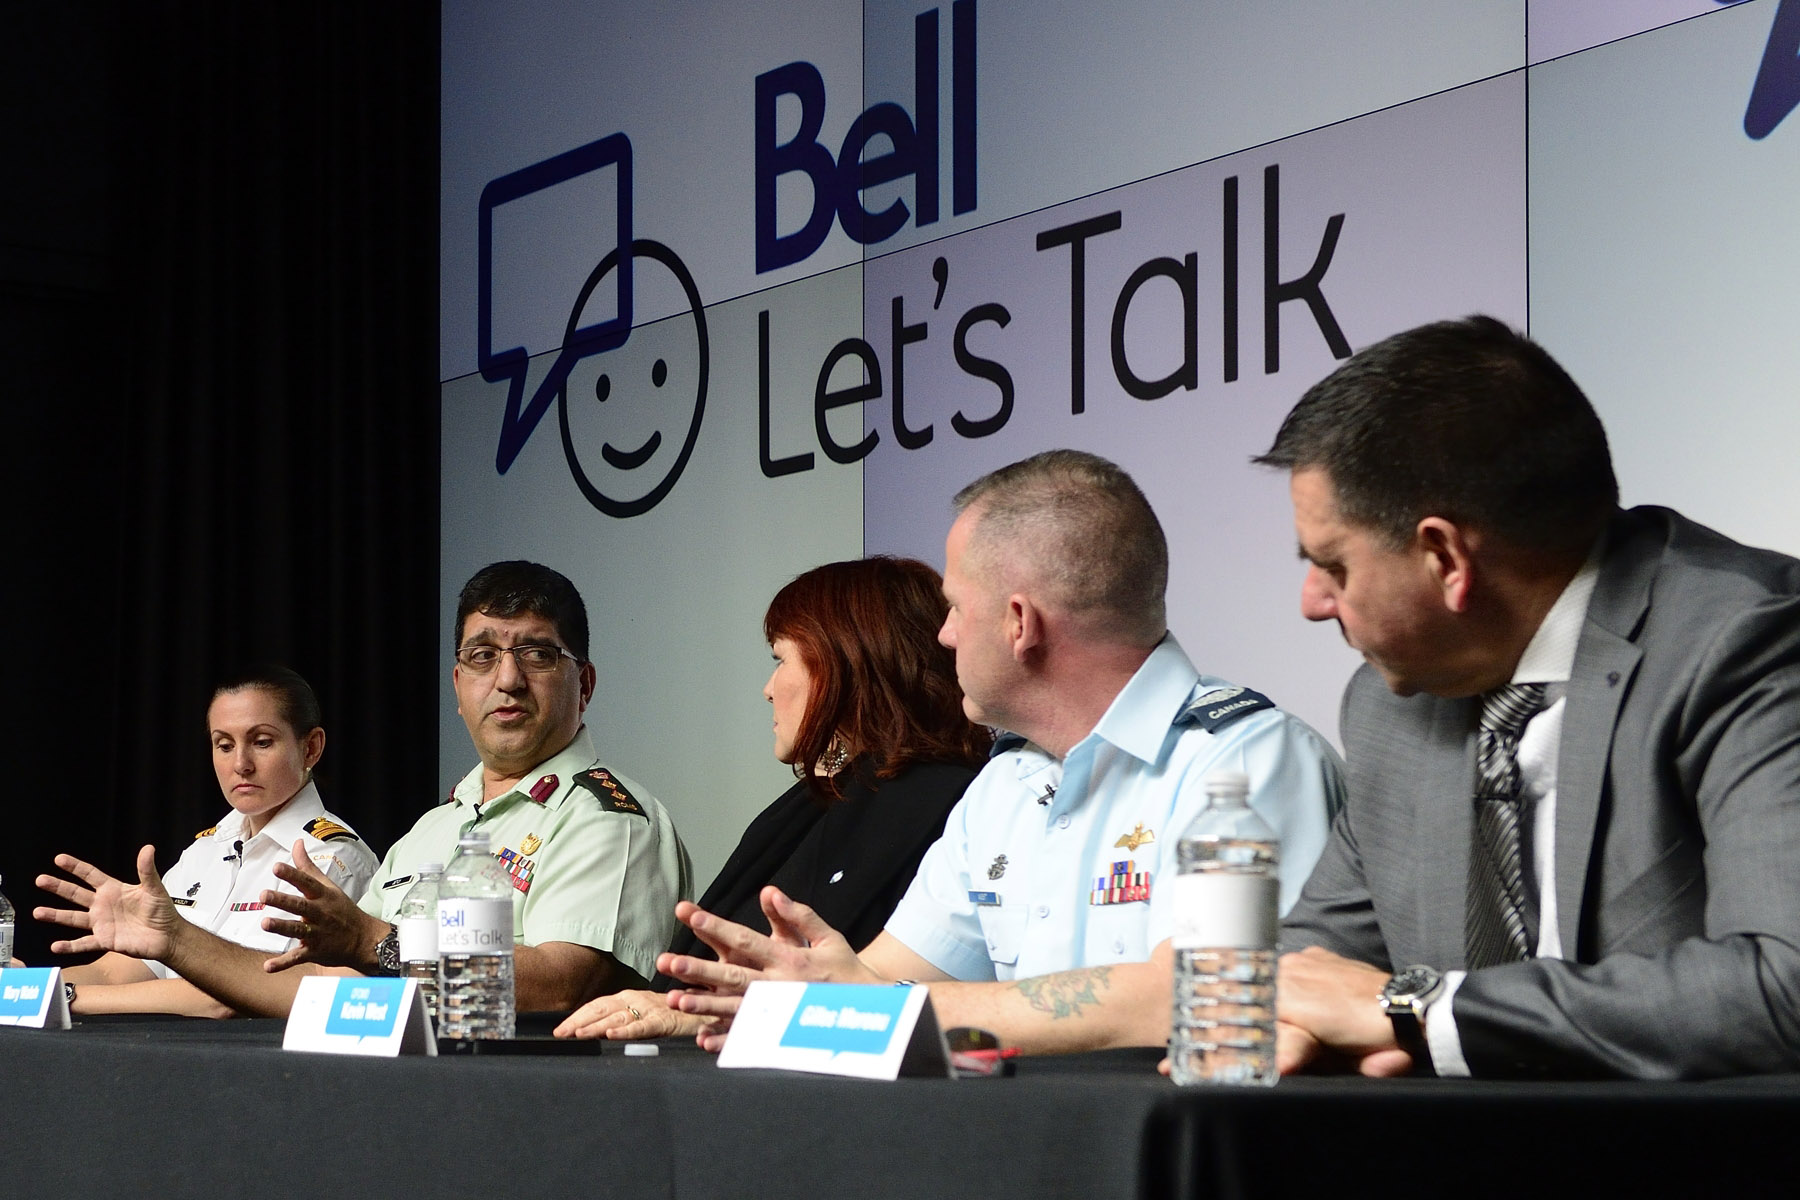 The panel discussion provided an opportunity to raise awareness and encourage dialogue around mental health.